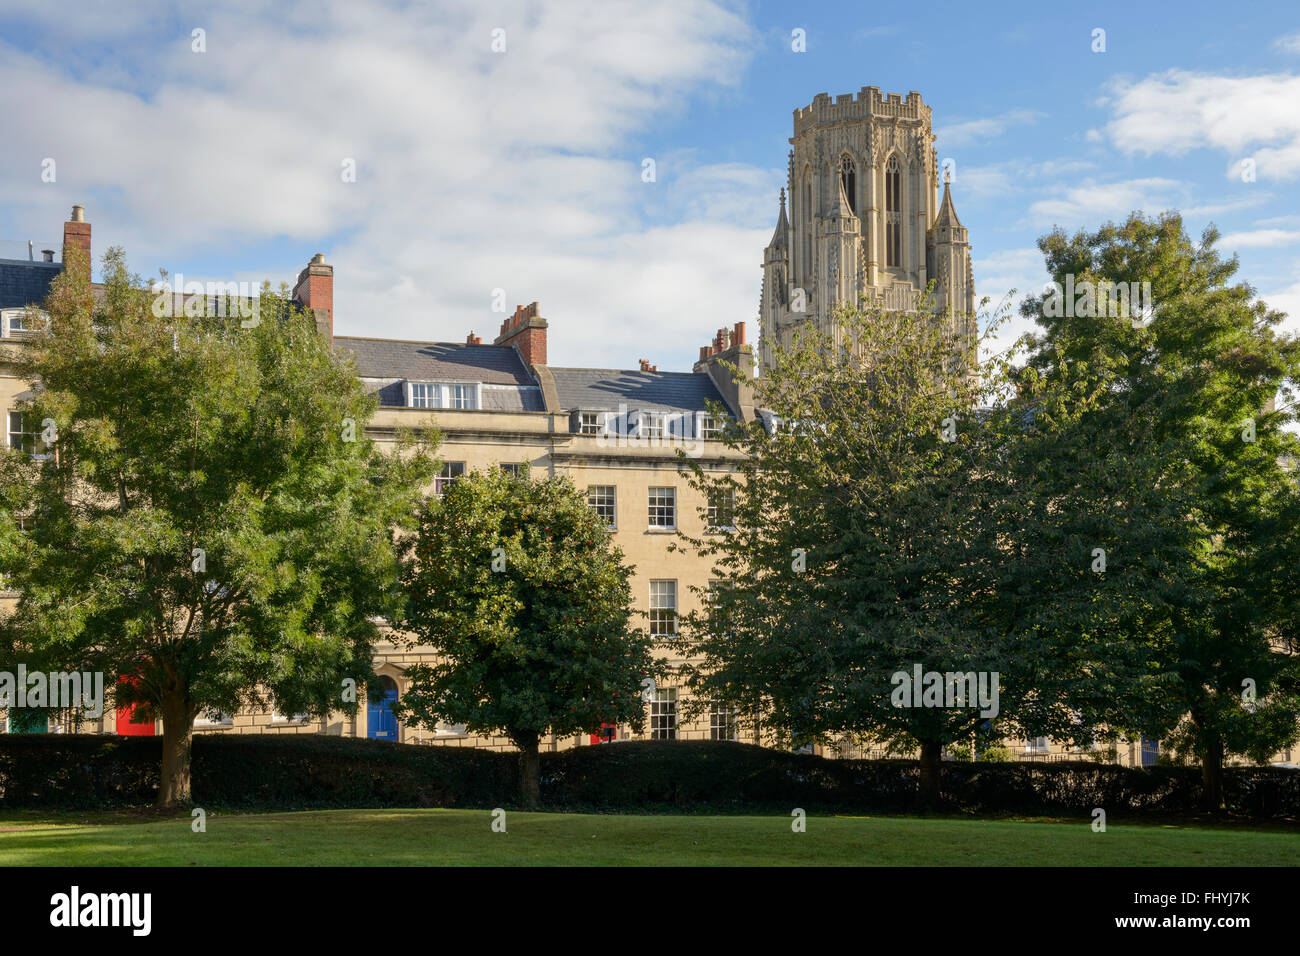 A view of the Wills Memorial Building from Berkeley Square in Bristol. - Stock Image